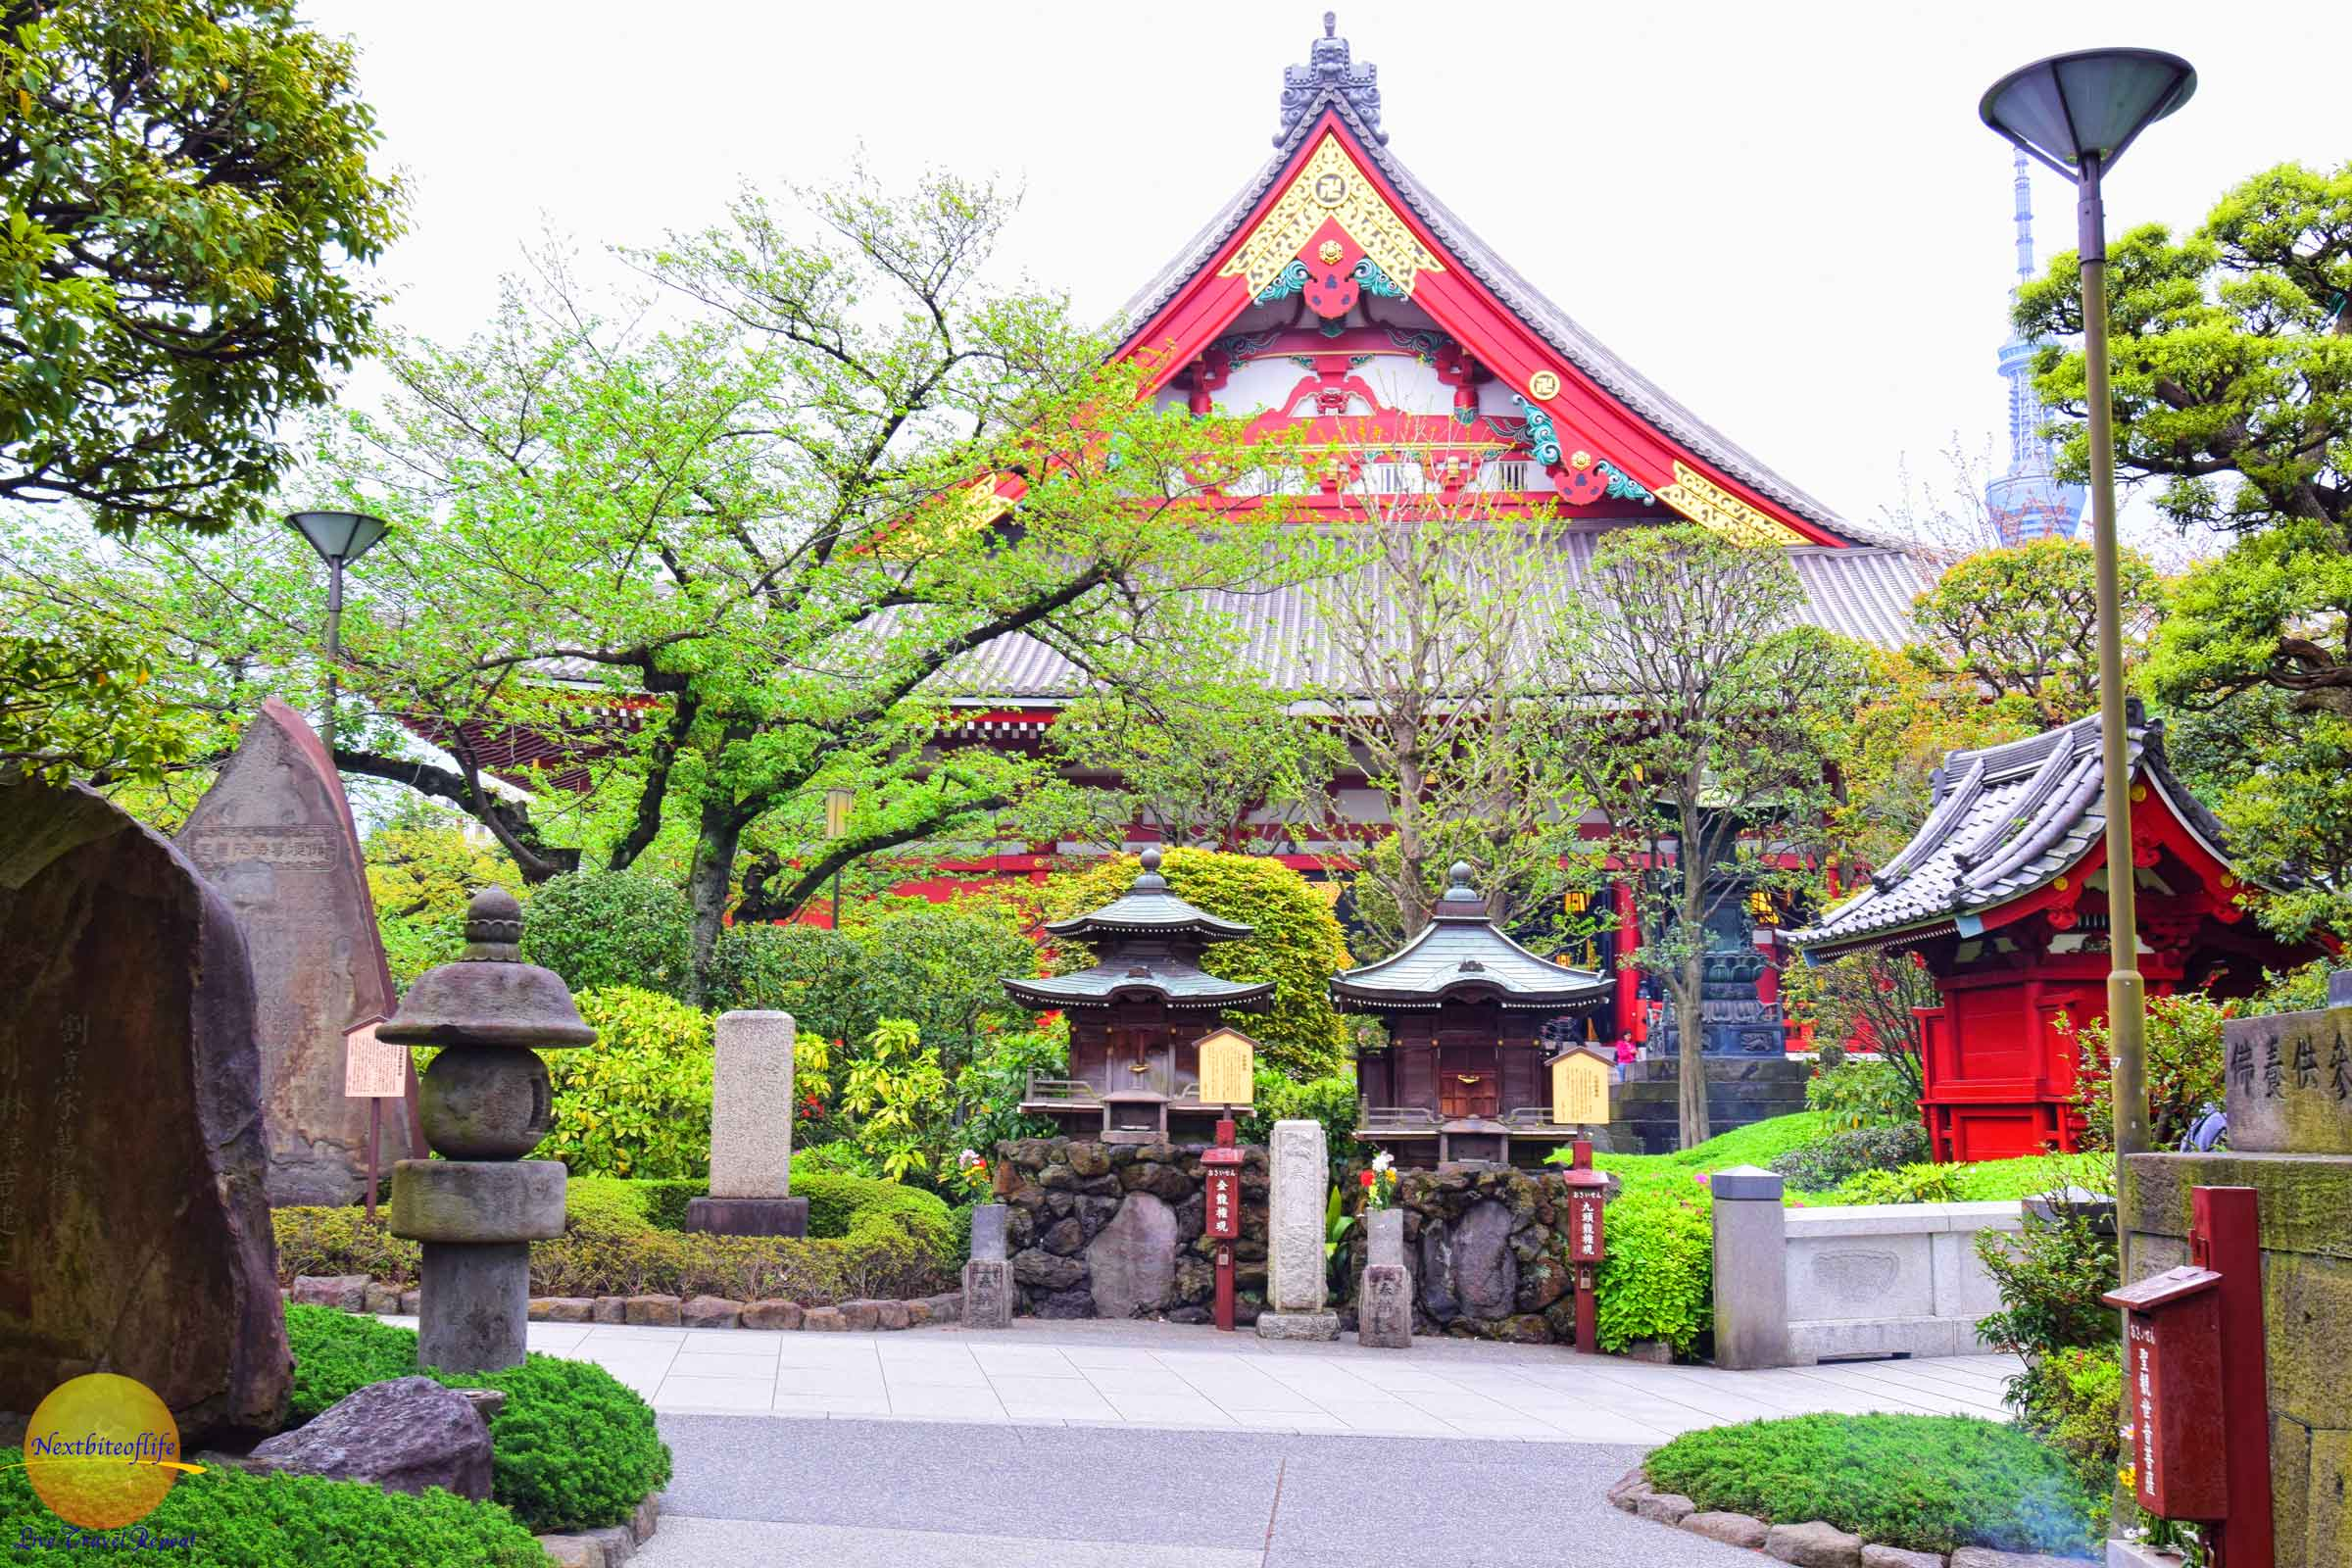 A little greenery at the Sensoji Temple in Asakusa prefecture, Tokyo, Japan